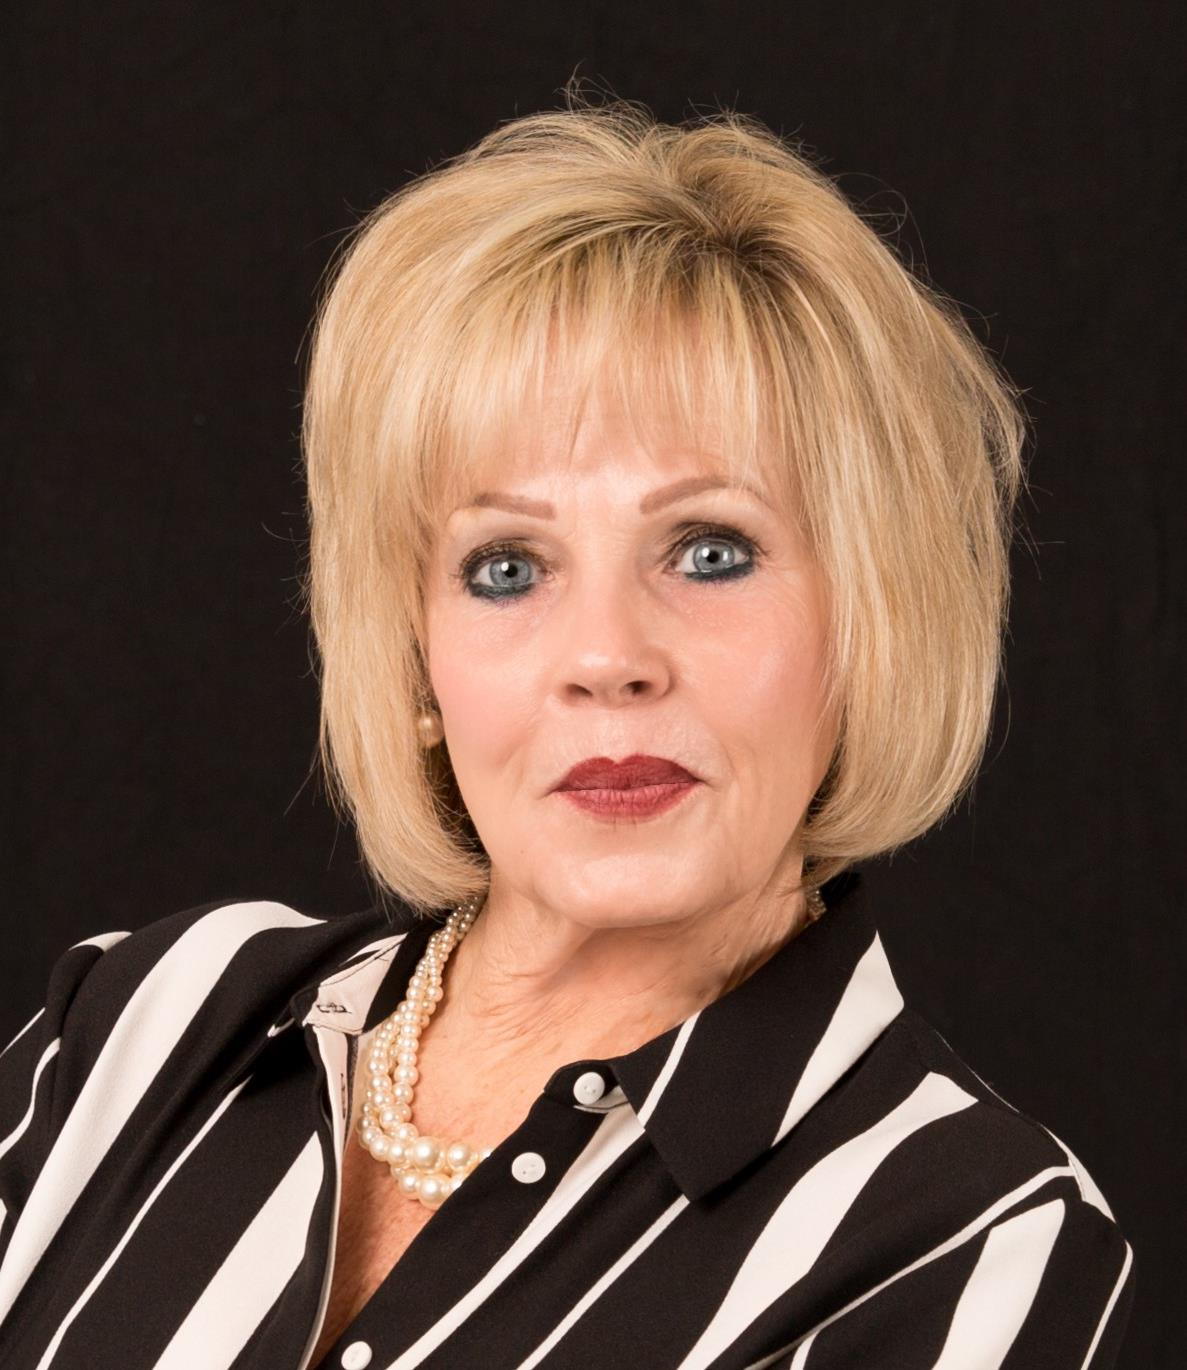 Debra K. Debra K. is a licensed real estate agent in Prescott AZ